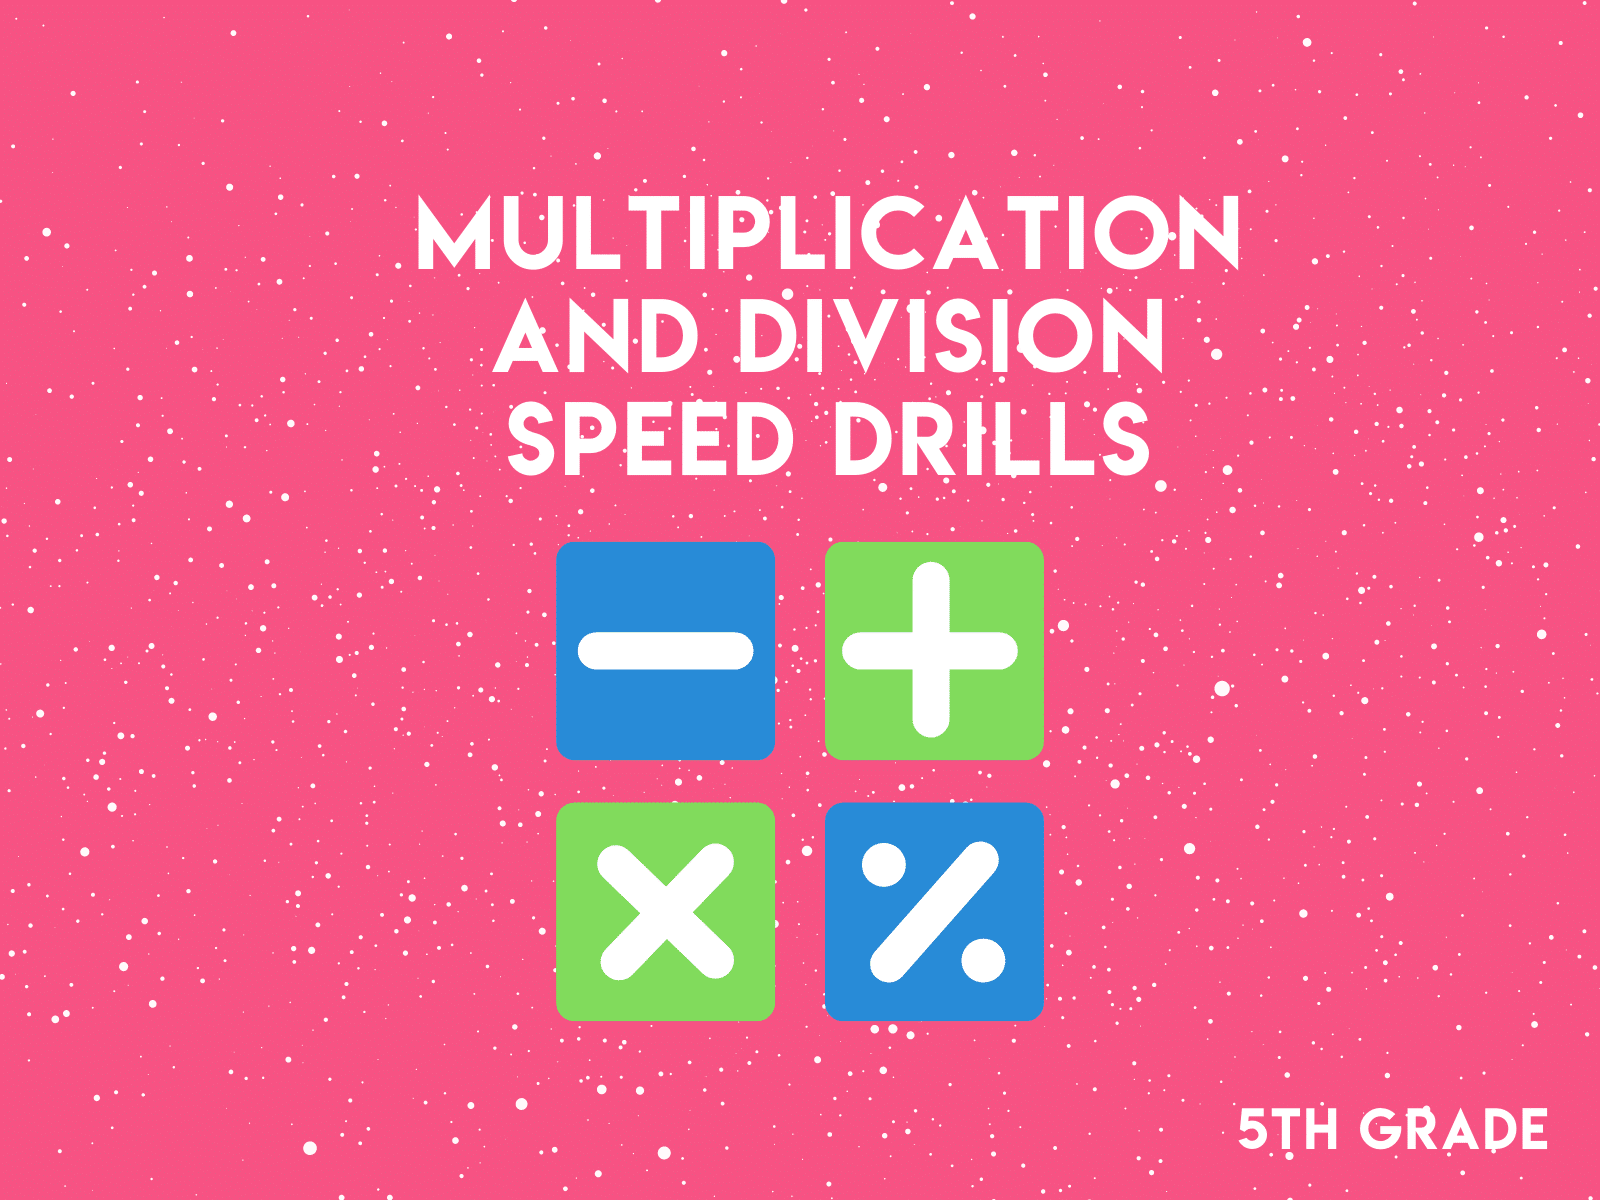 5th Grade -Multiplication and Divison Speed Drills